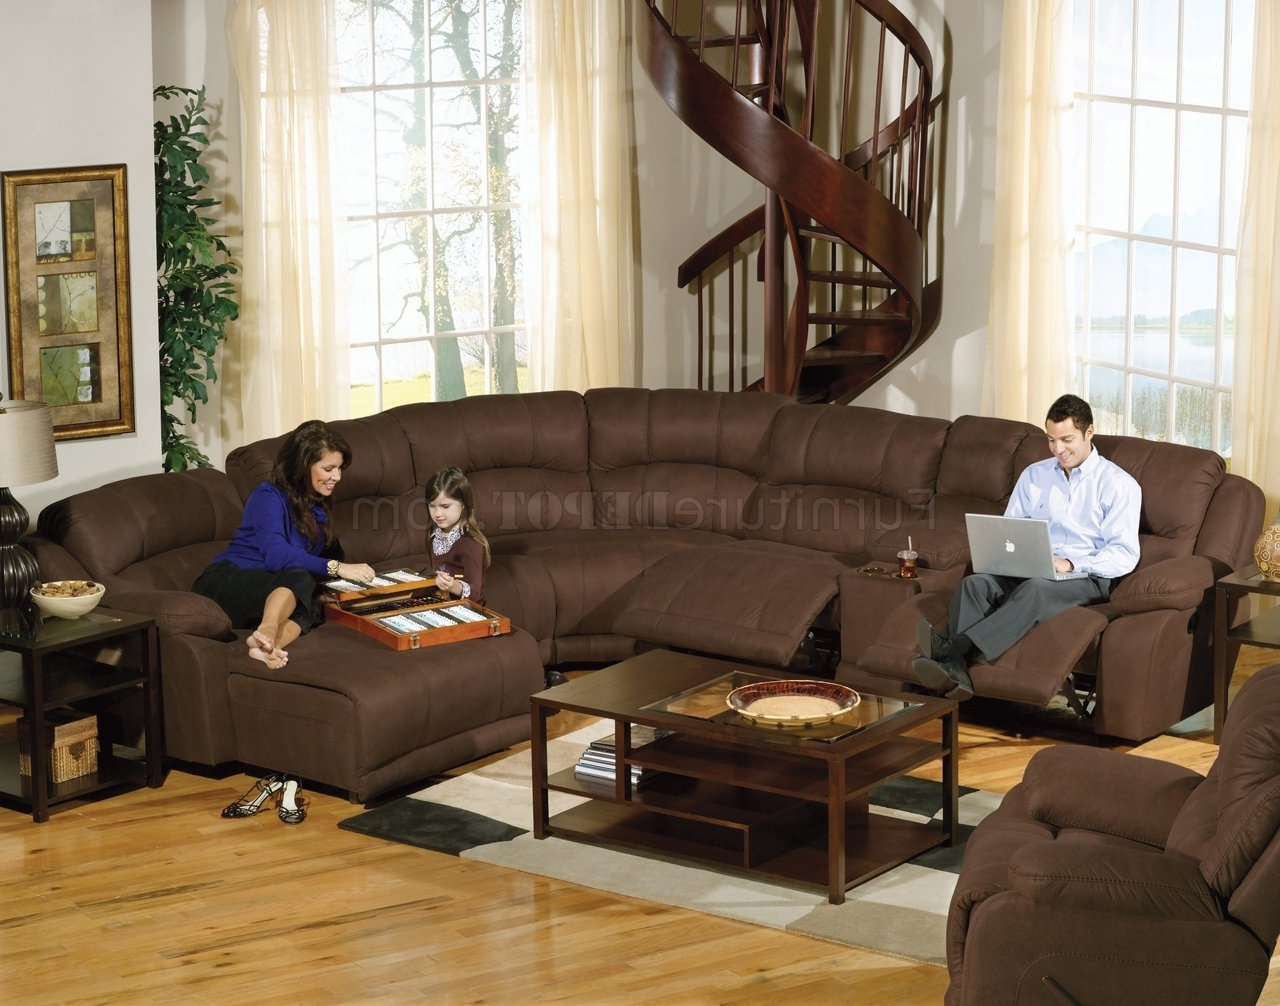 Oakville Sectional Sofas Within Most Up To Date Furniture : Brown Leather Sofa For Sale York Brown Leather Couch (View 16 of 20)